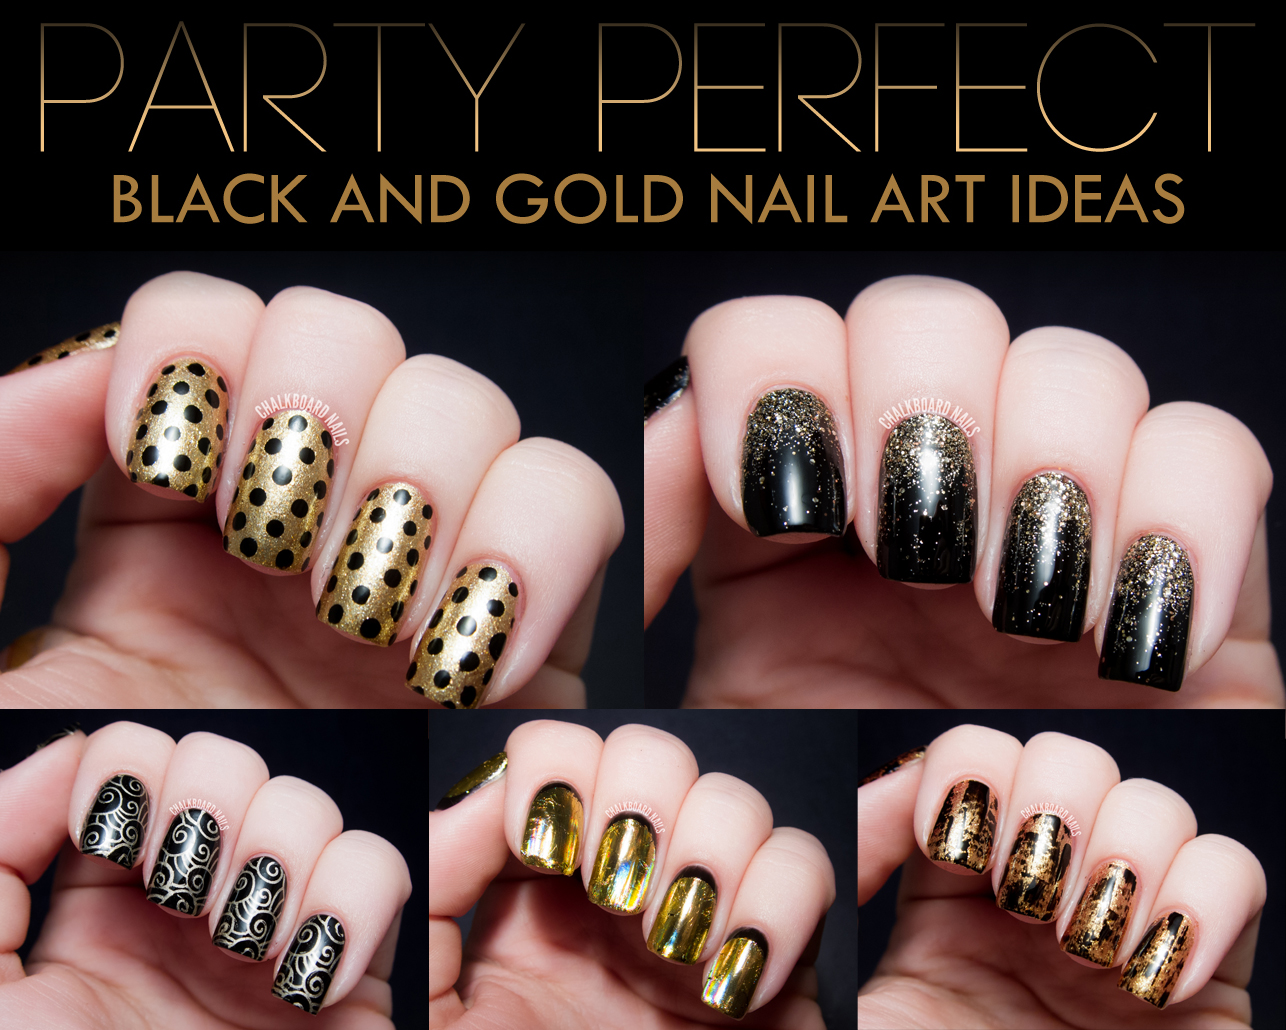 I have been wearing a lot of black and gold manicures lately, and I thought  it would be the perfect opportunity to highlight one of my favorite party  ... - Party Perfect: Black And Gold Nail Art Ideas Chalkboard Nails